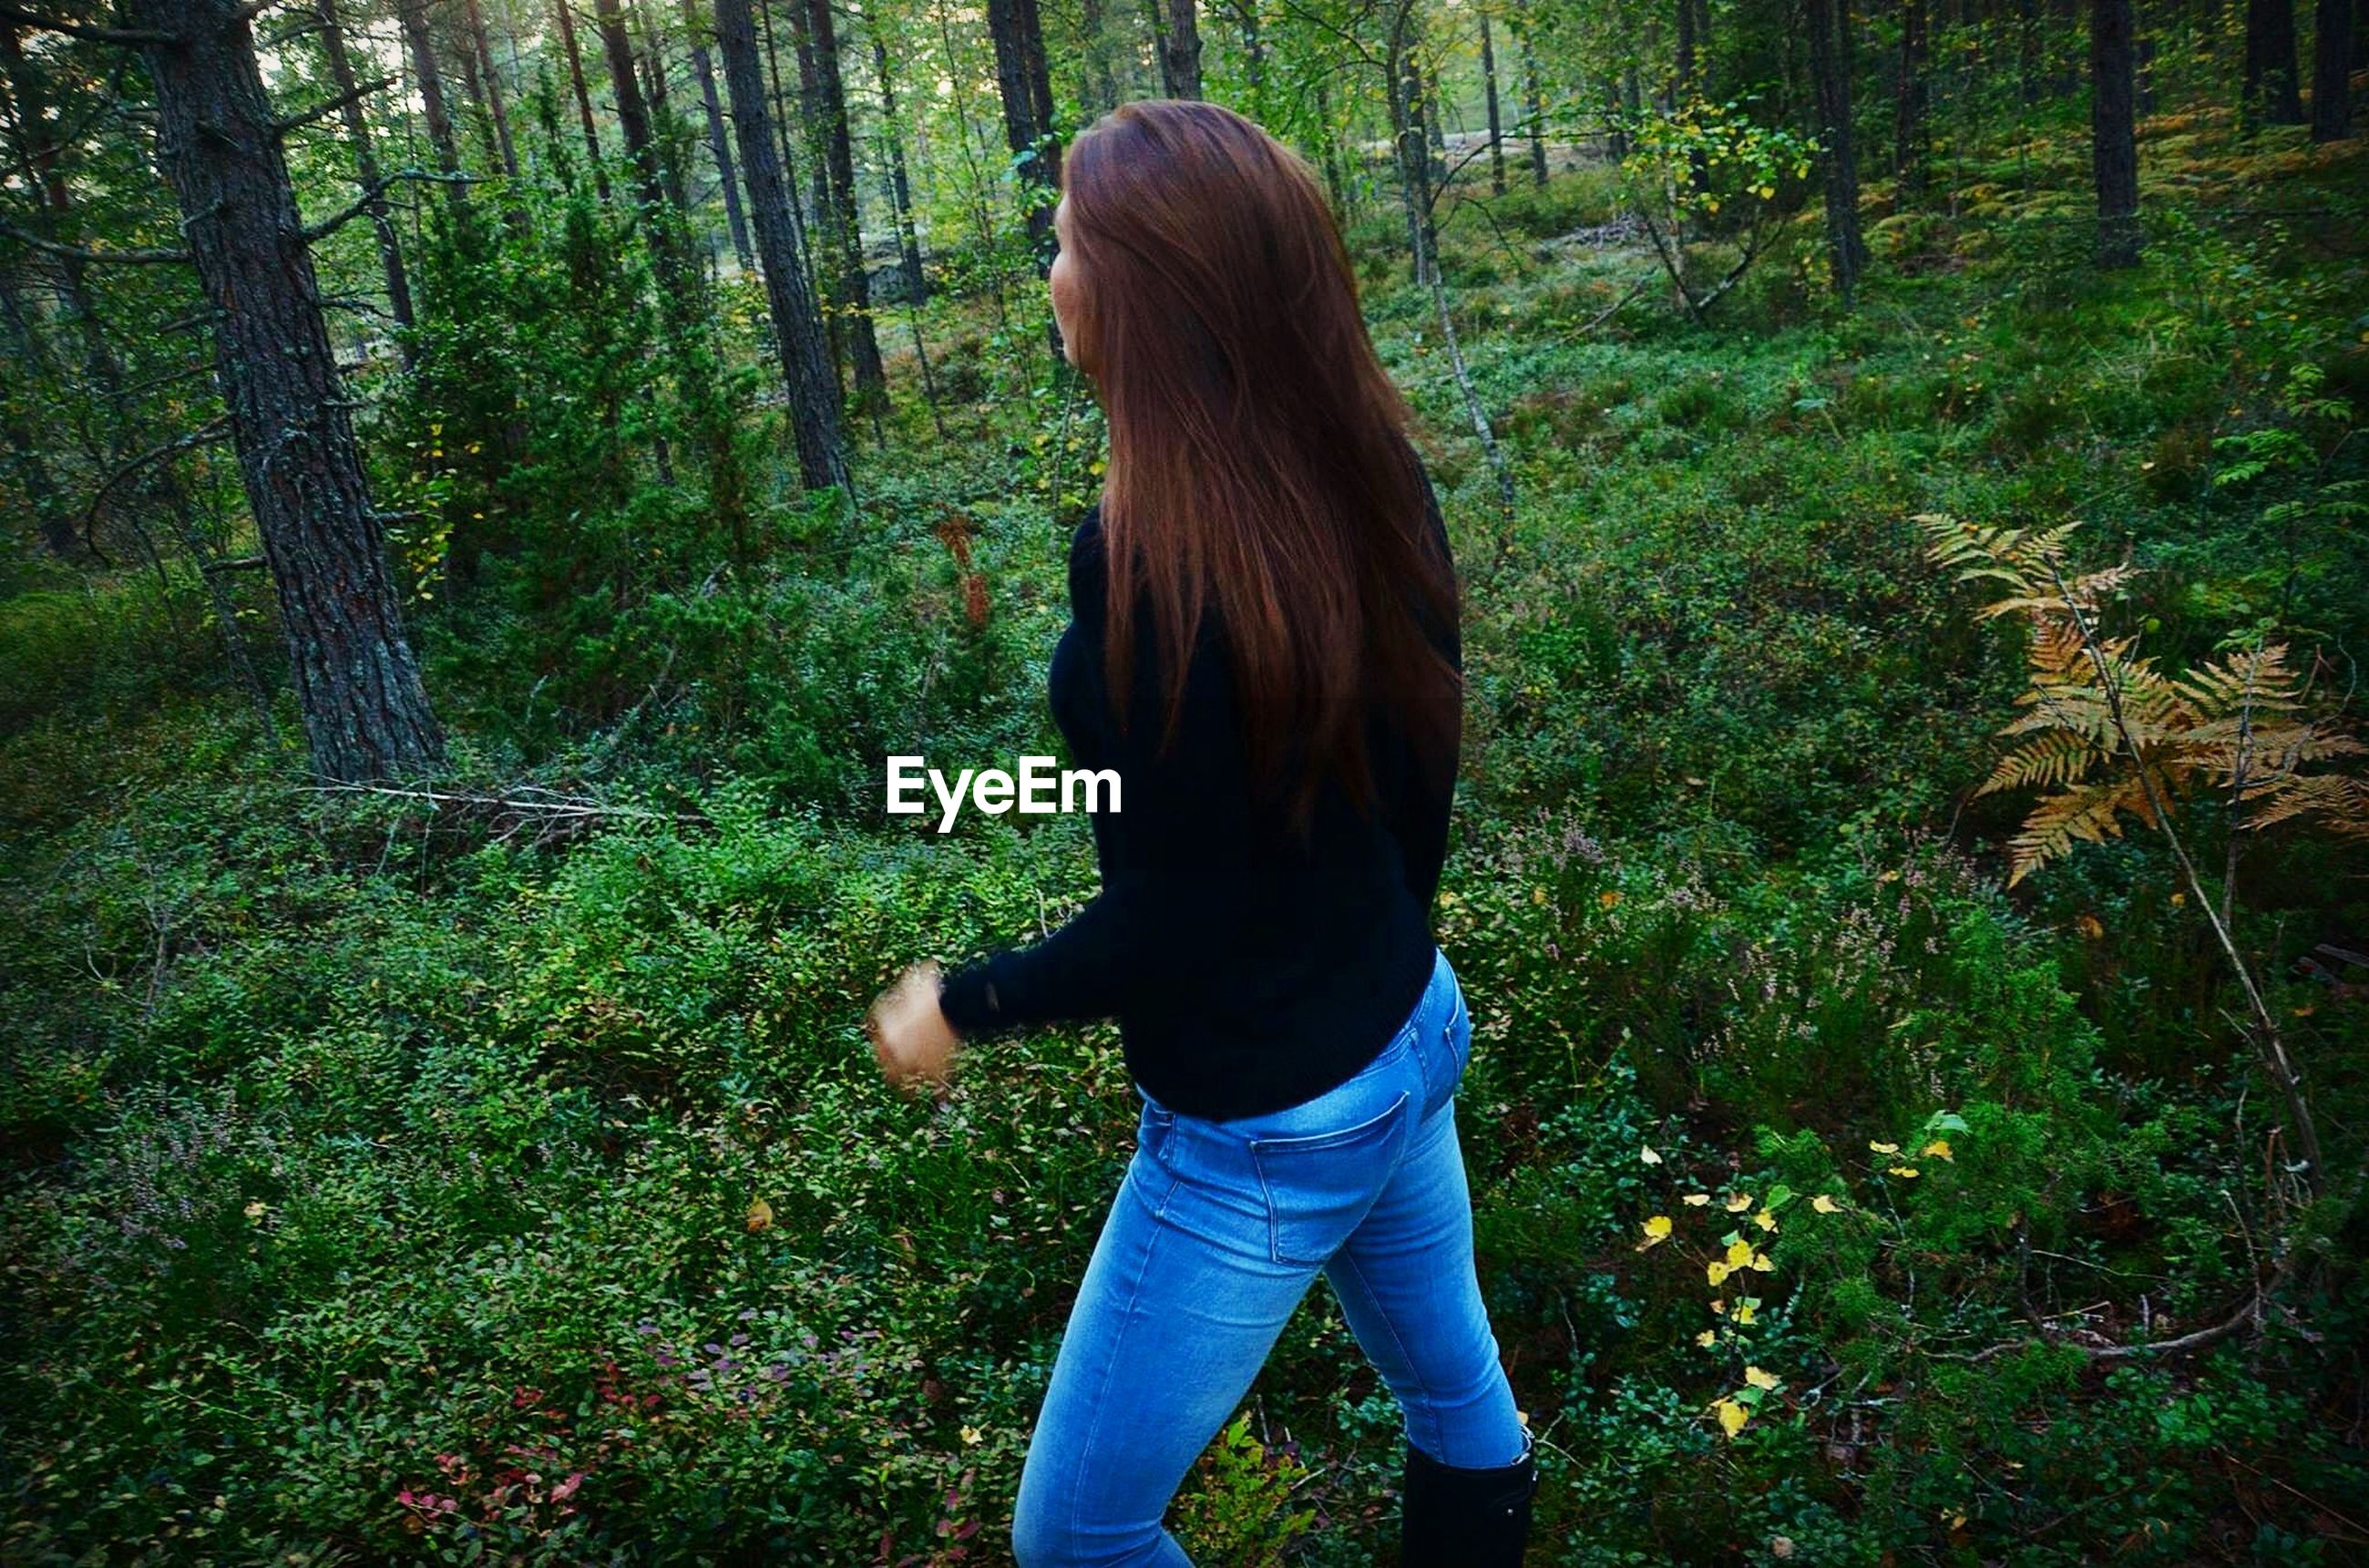 tree, rear view, casual clothing, standing, lifestyles, forest, leisure activity, three quarter length, long hair, grass, full length, tree trunk, waist up, person, nature, outdoors, day, growth